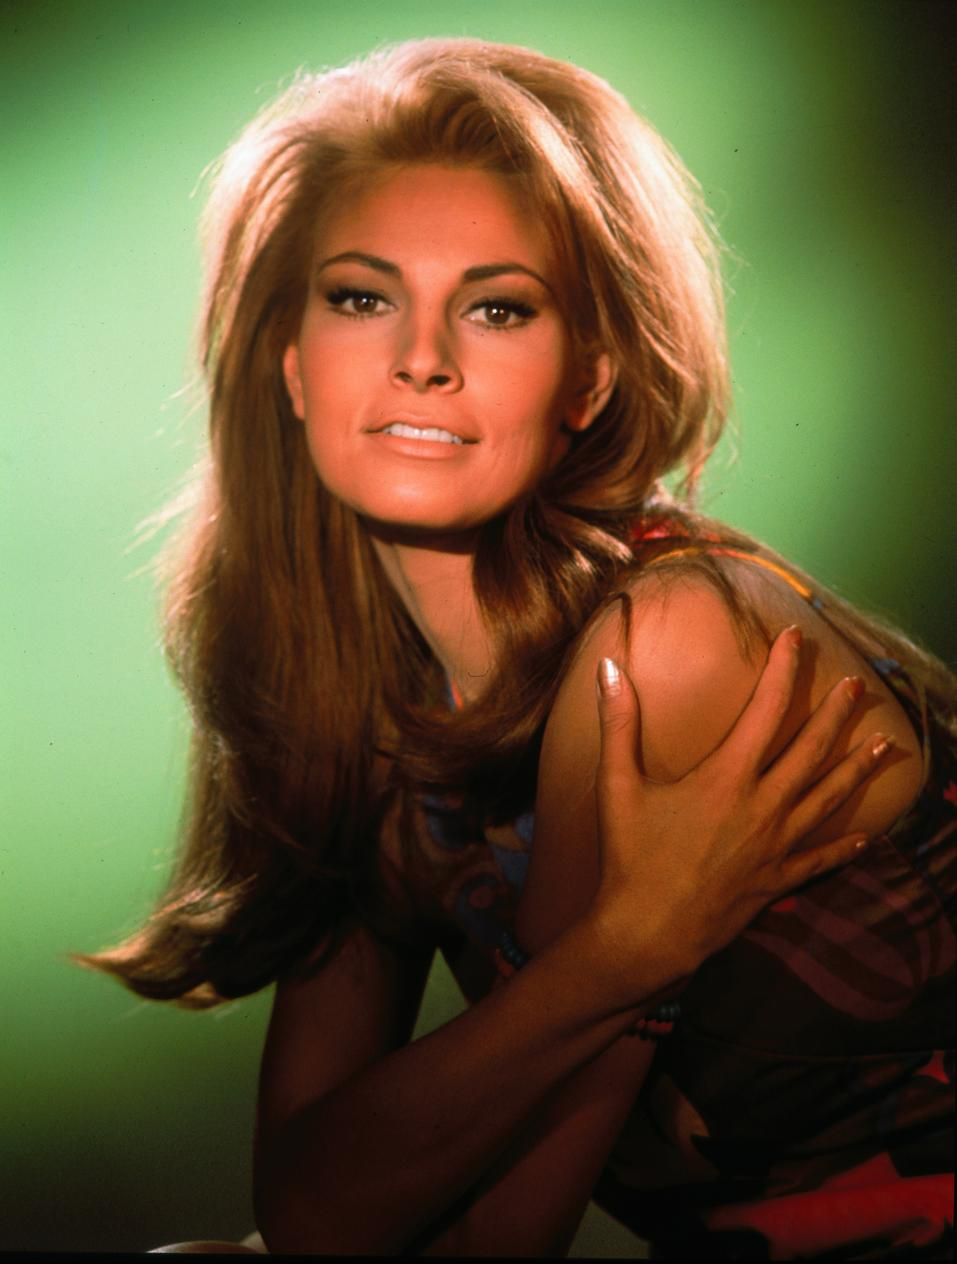 Raquel Welch - Wallpaper Image